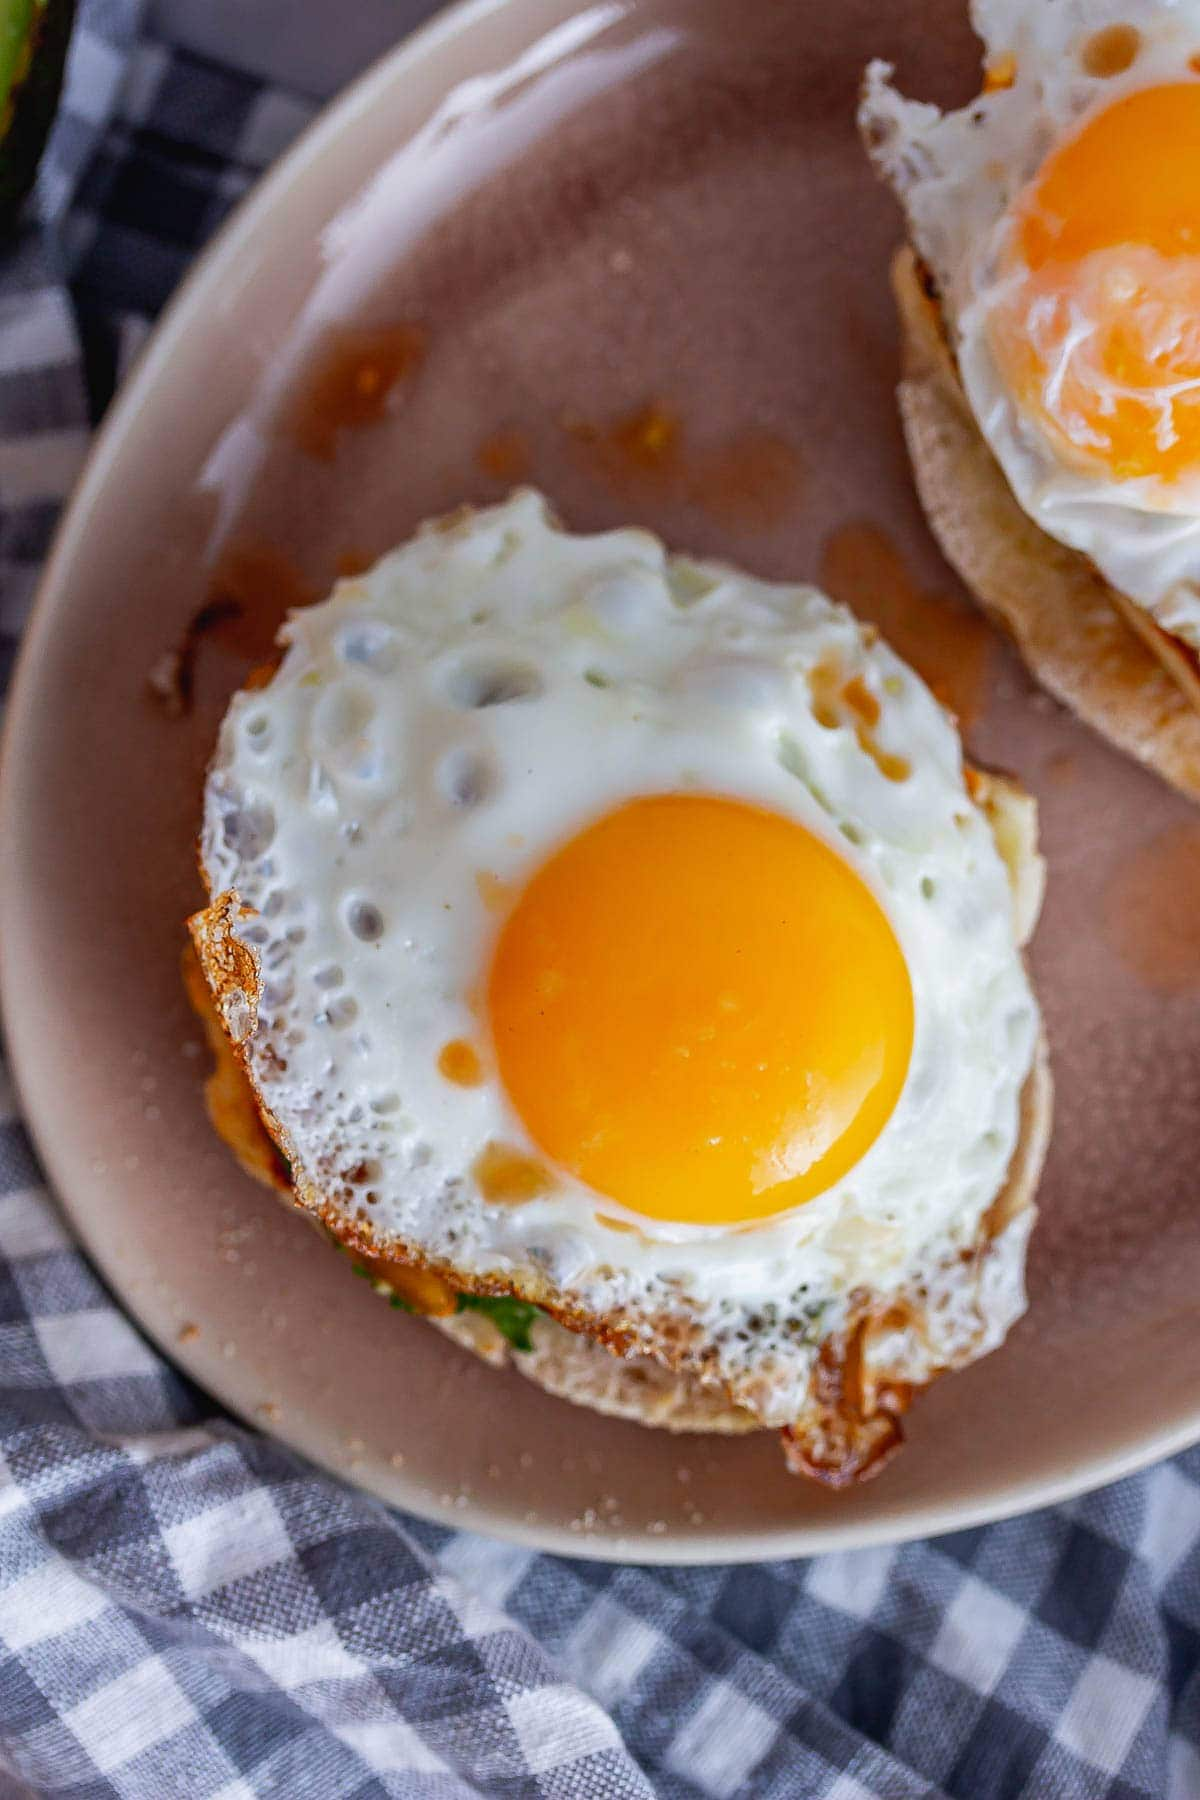 Overhead shot of a fried egg on a pink plate